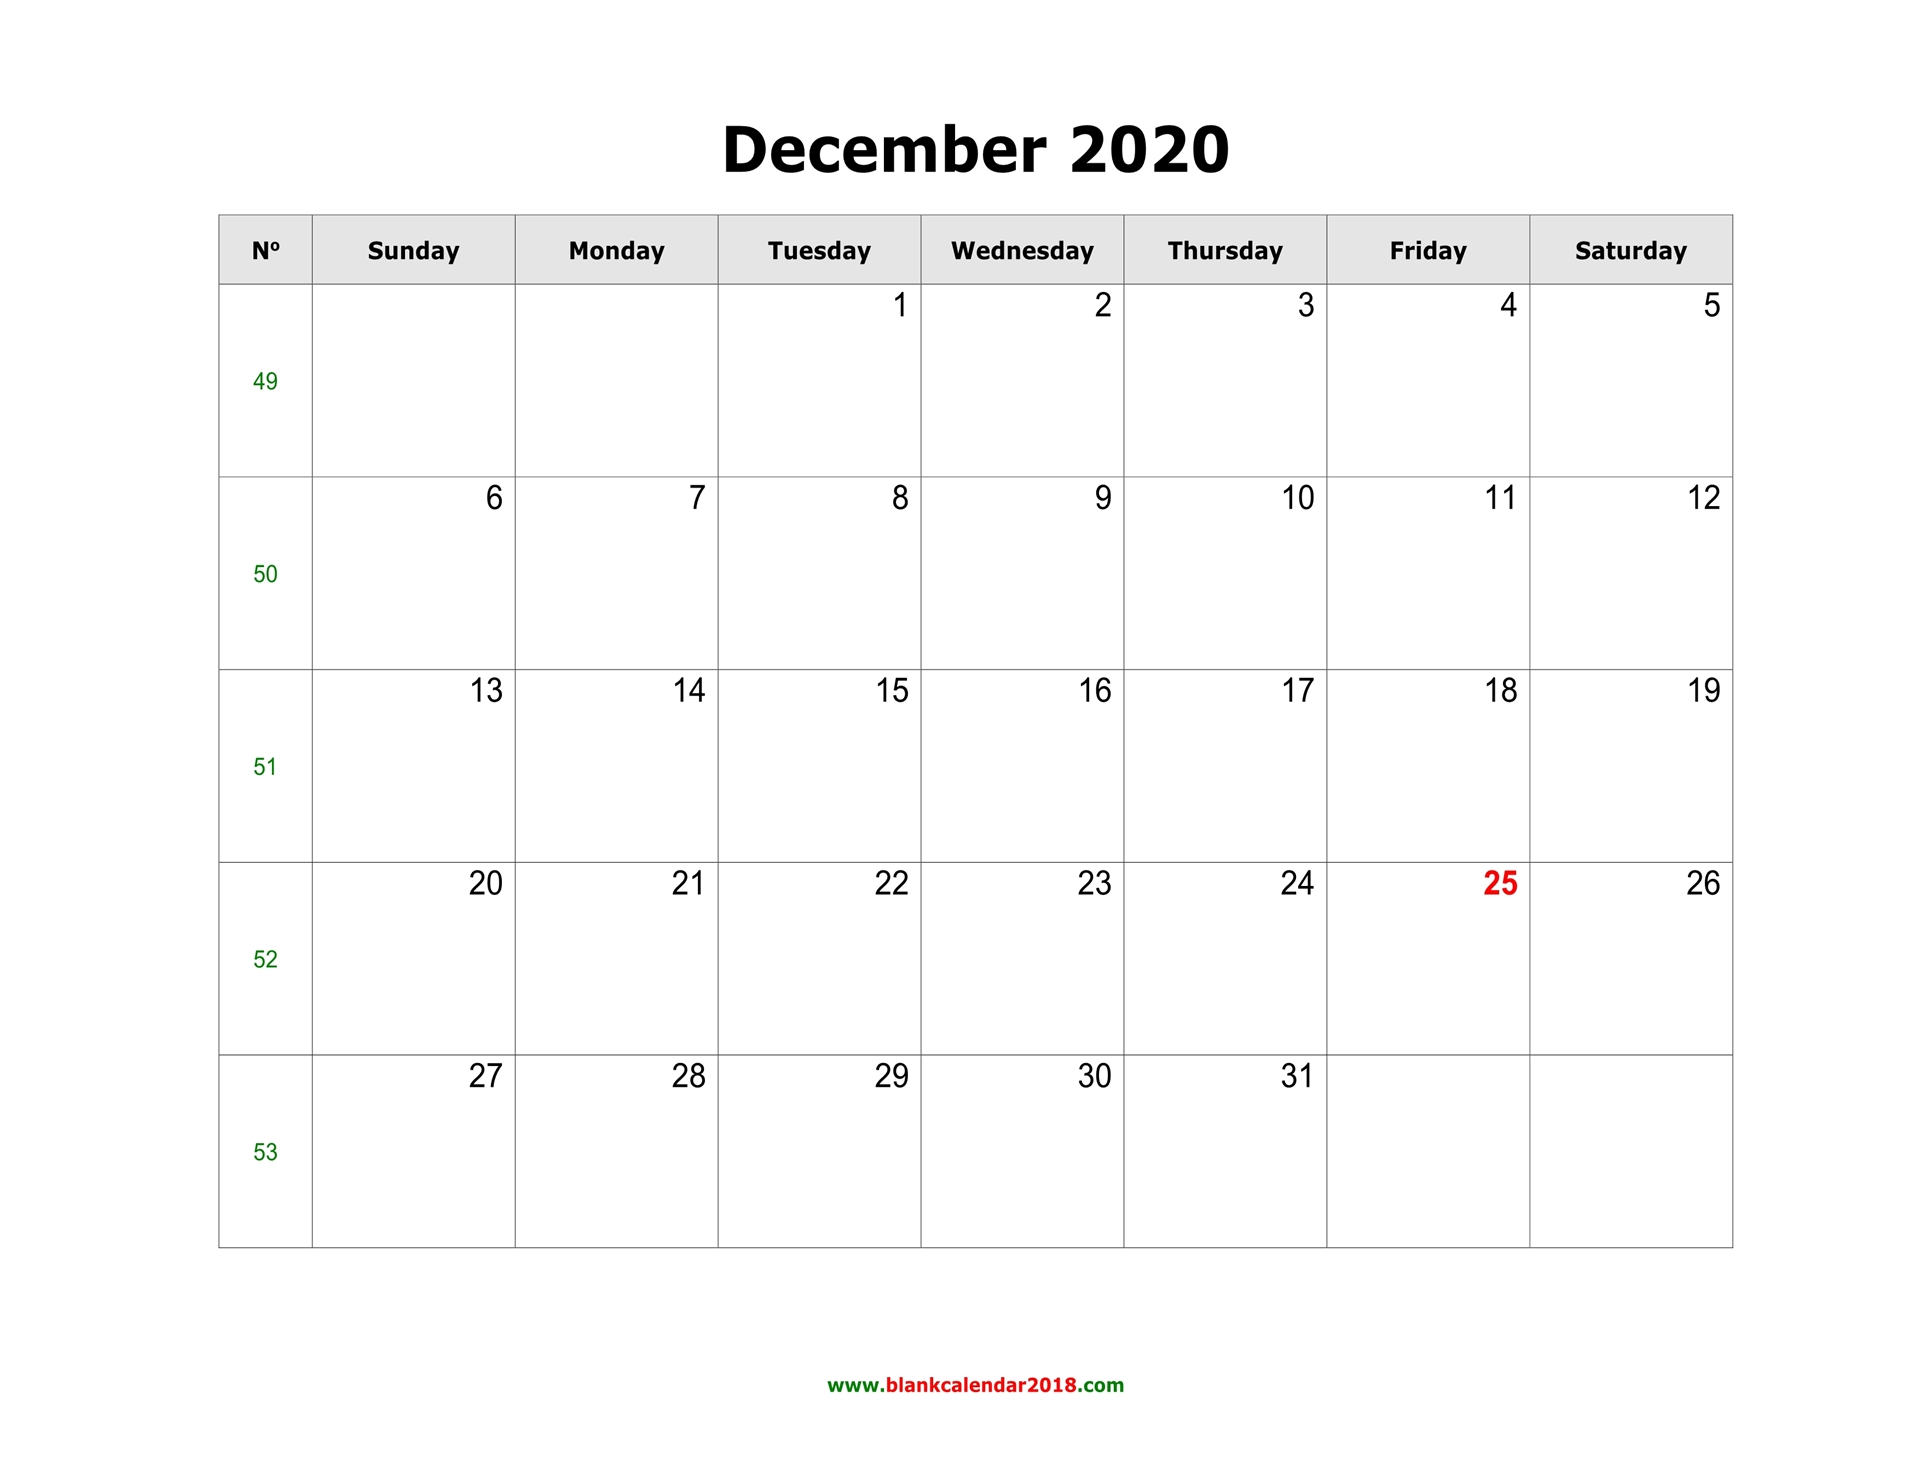 Blank Calendar For December 2020 throughout Writable December 2020 Calendar